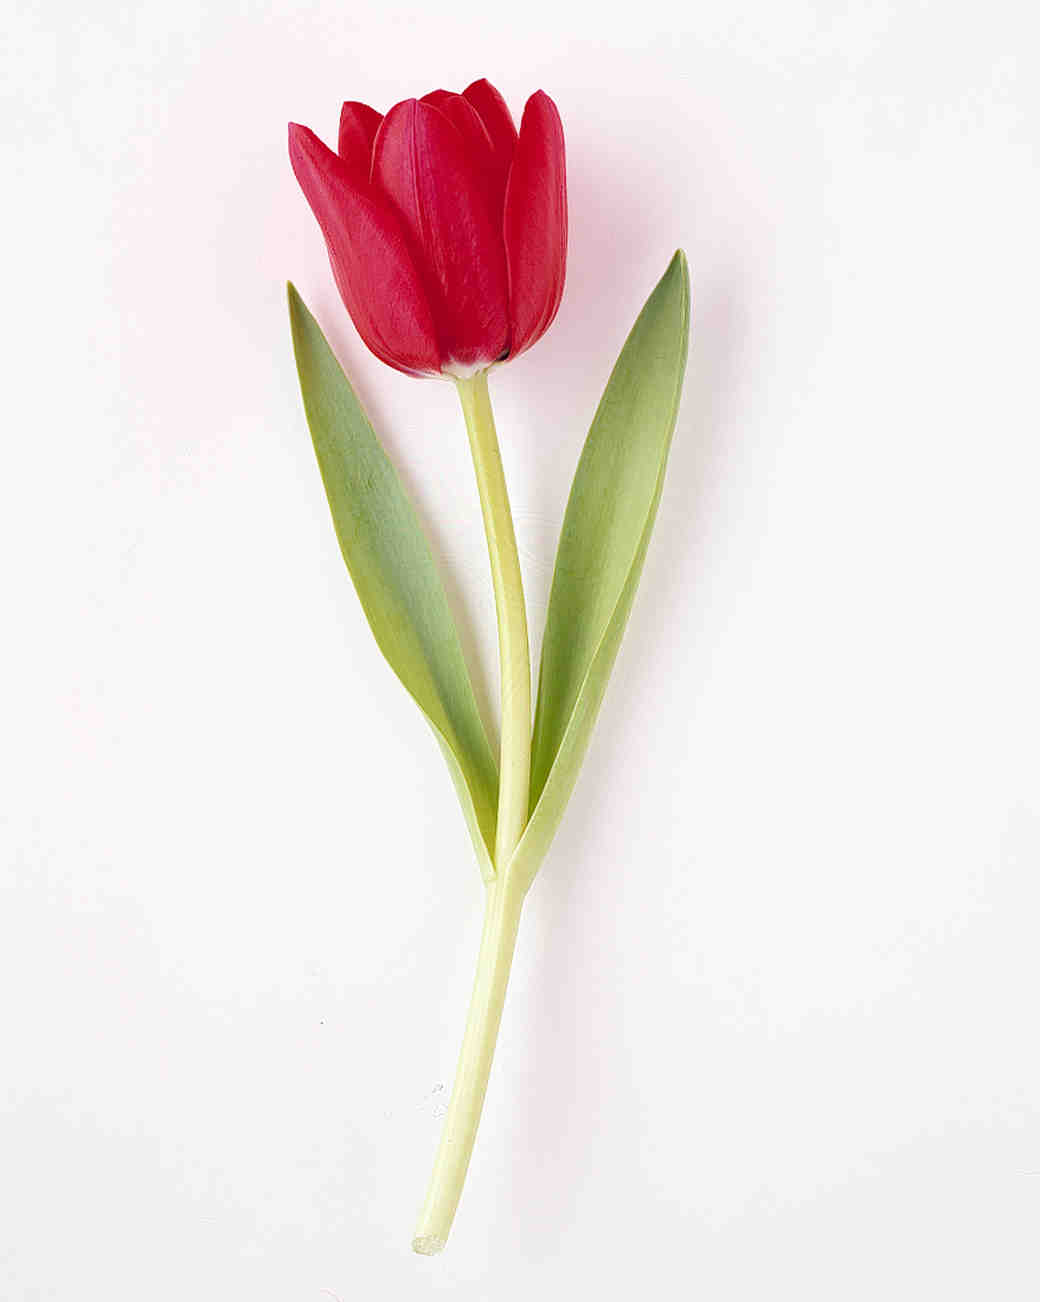 flower-glossary-tulip-ilde-france-red-a98432-0415.jpg